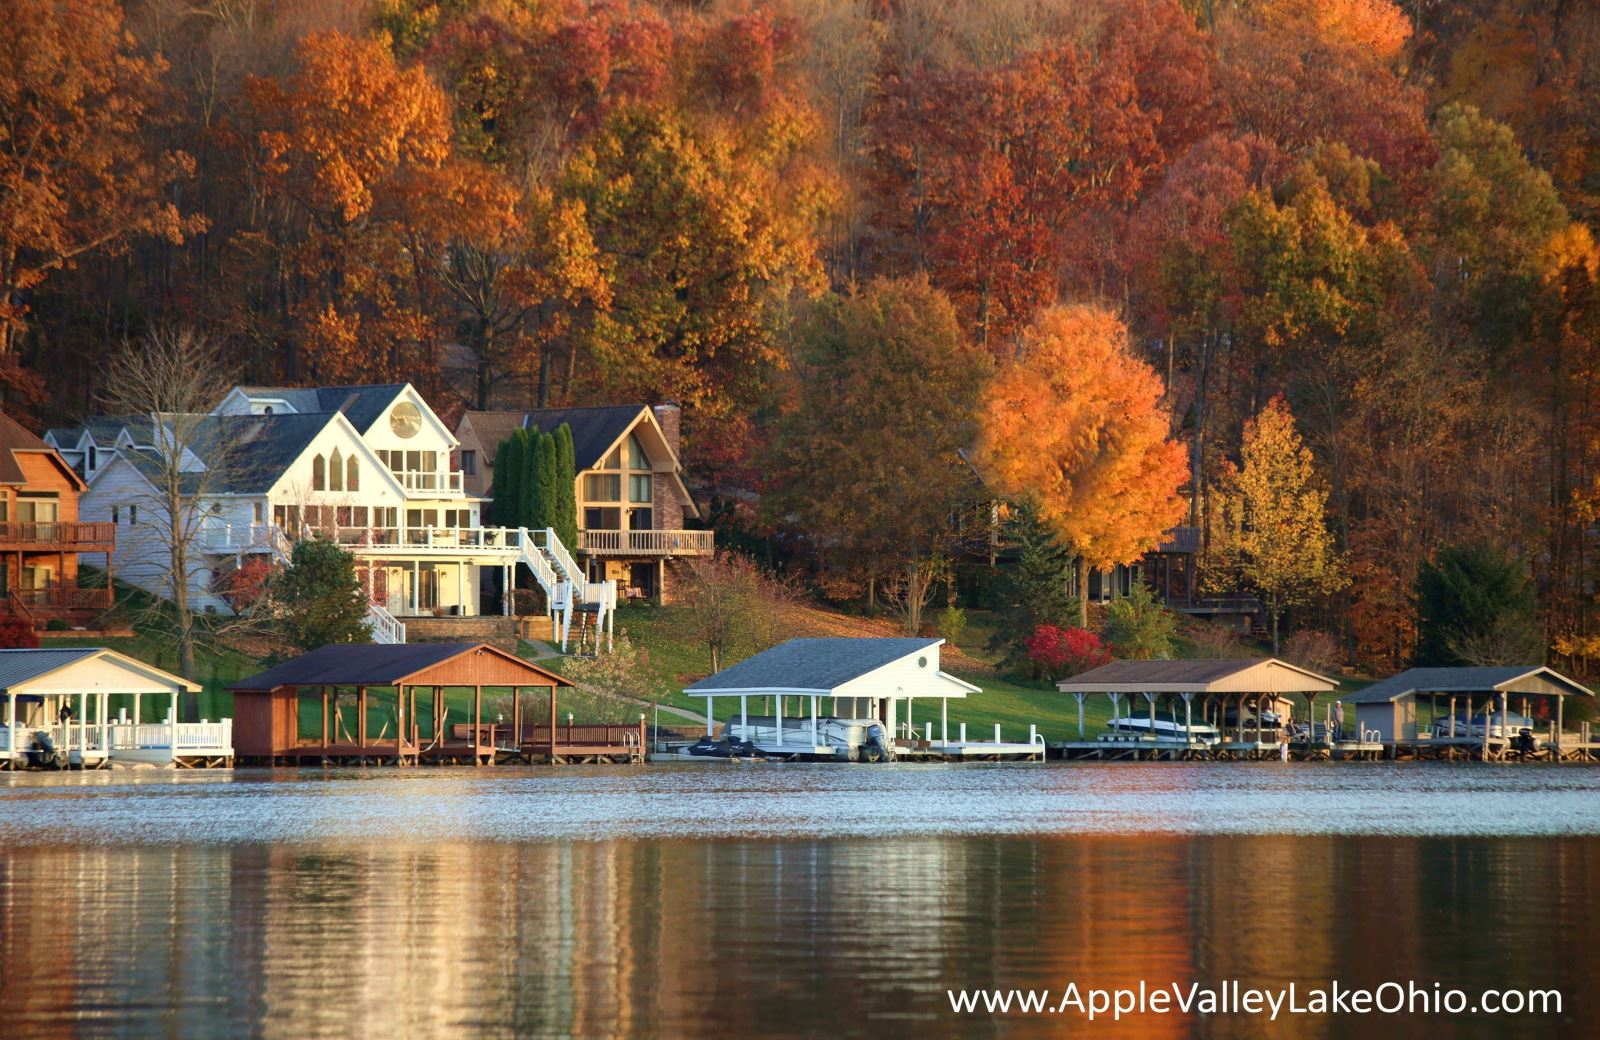 Weather at Apple Valley Lake - Fall